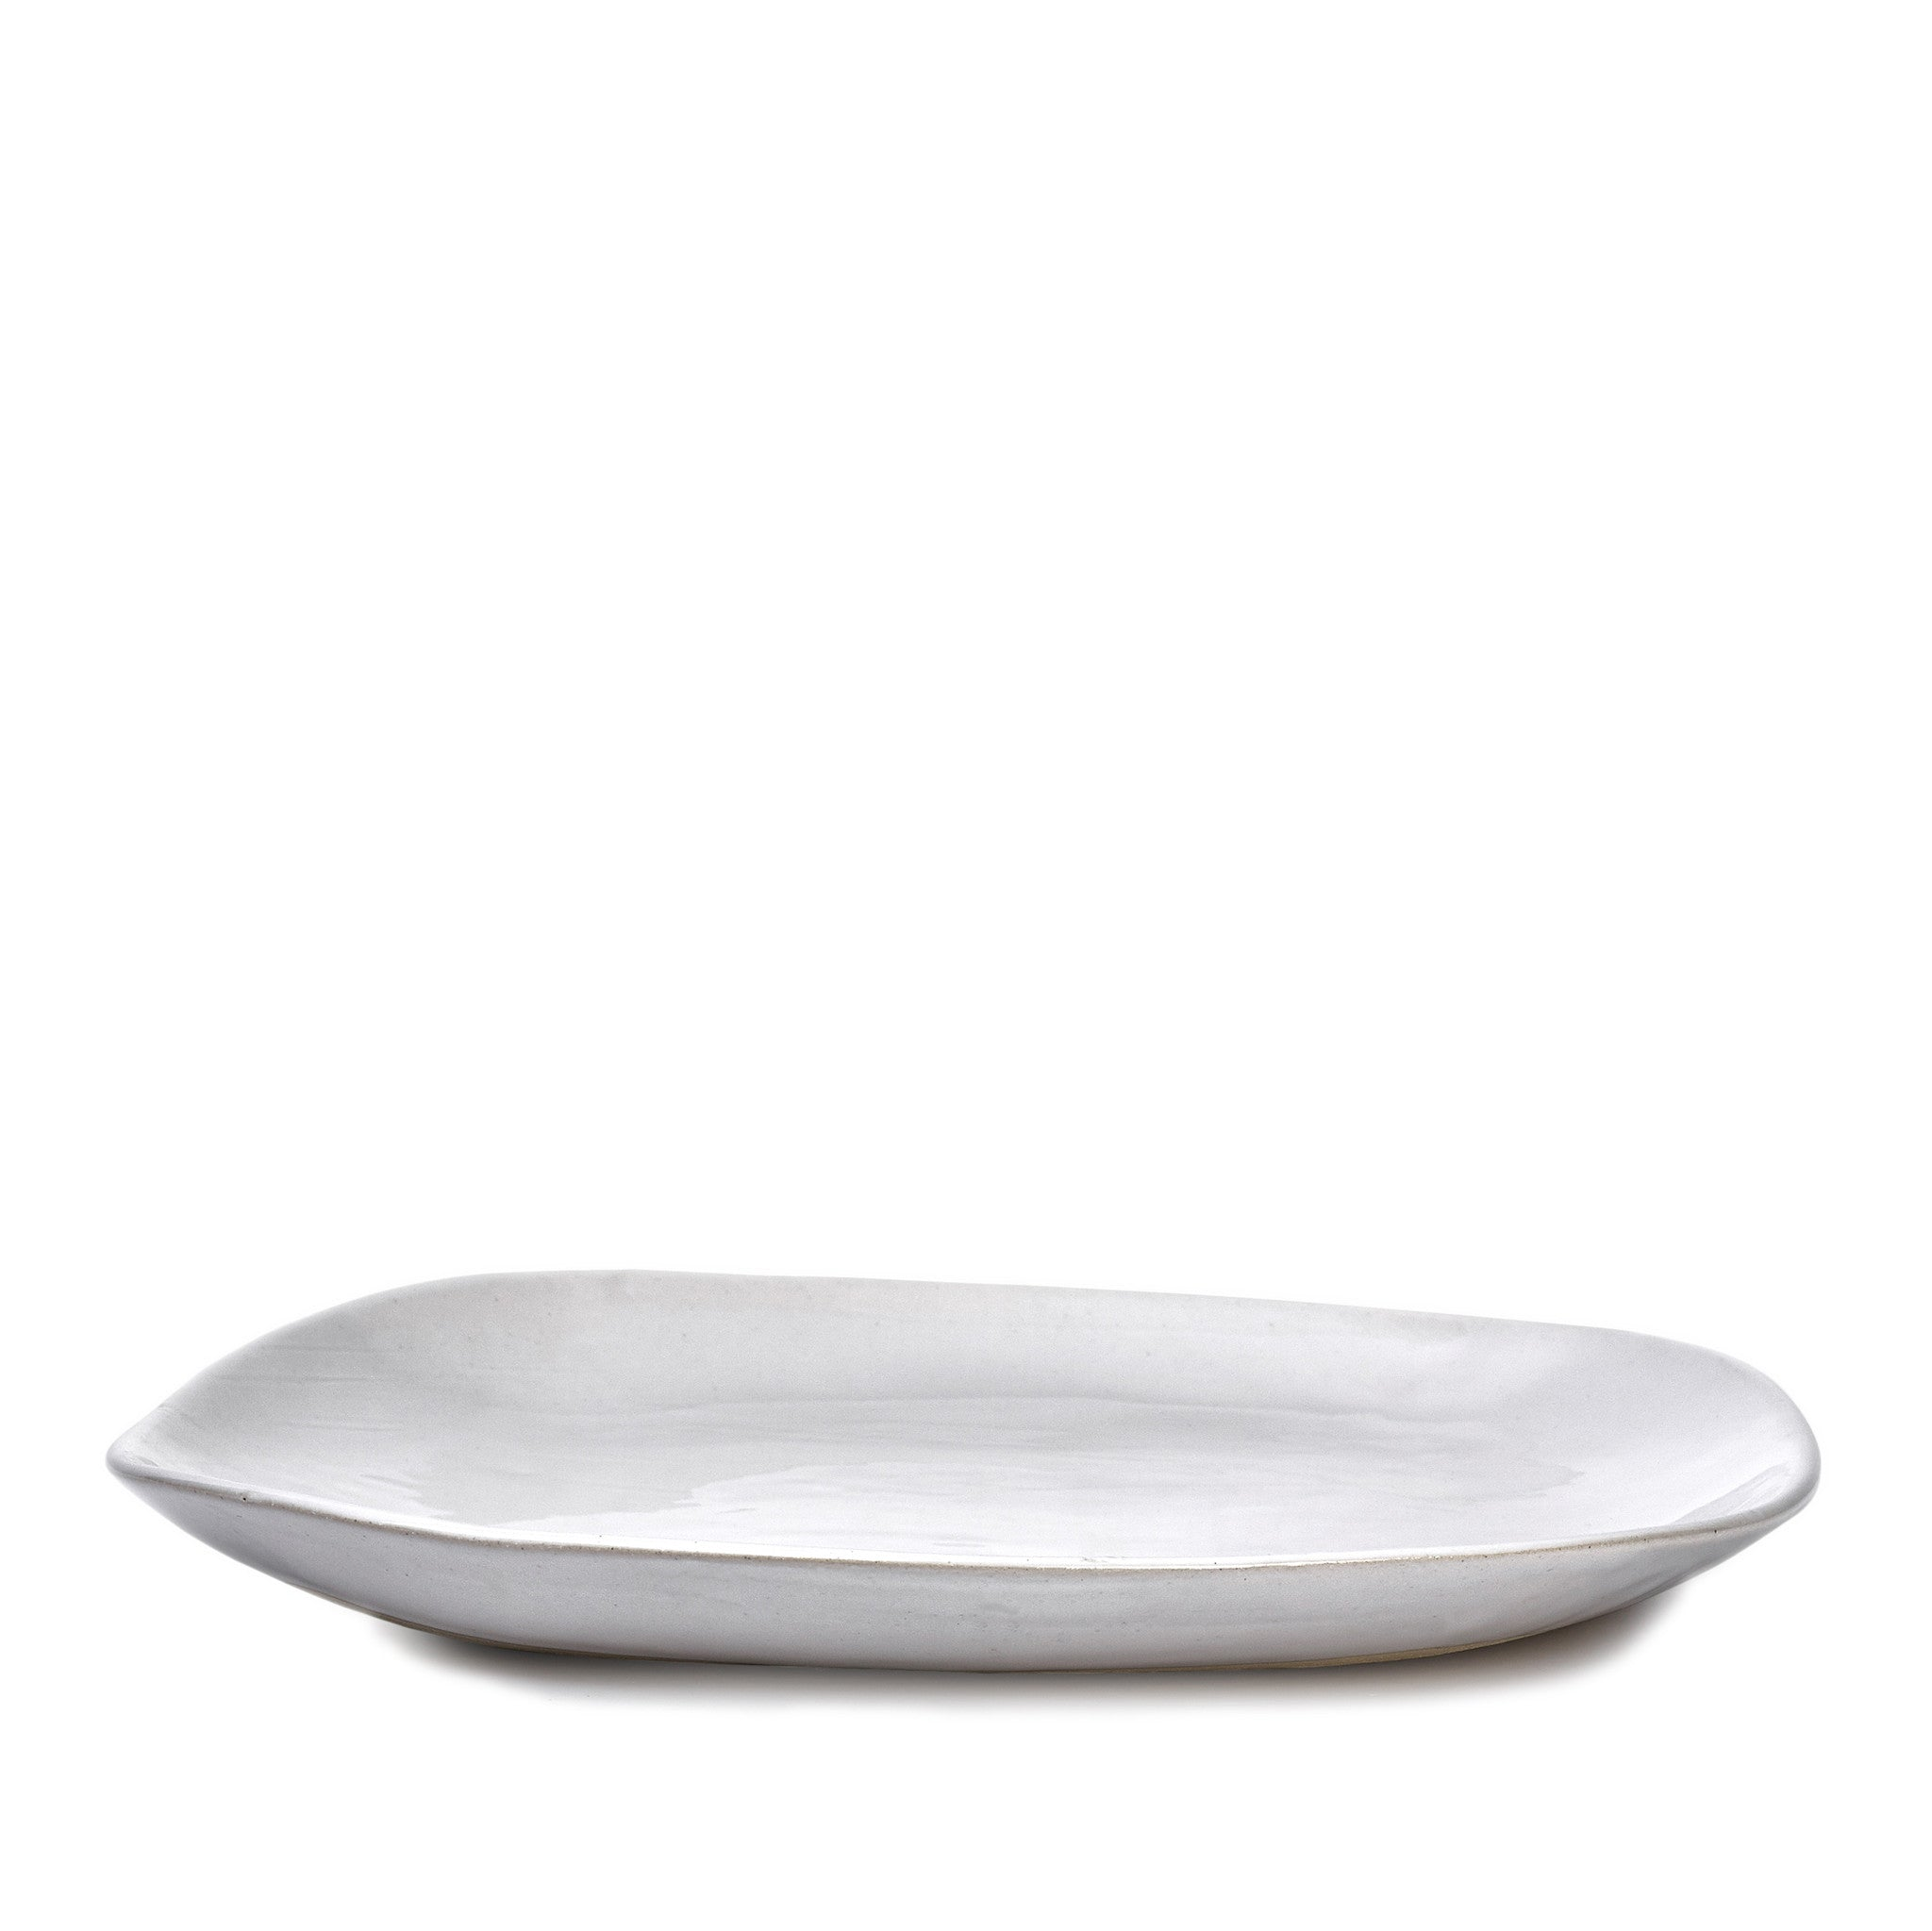 Wonki Ware Meat Platter in White, 40cm